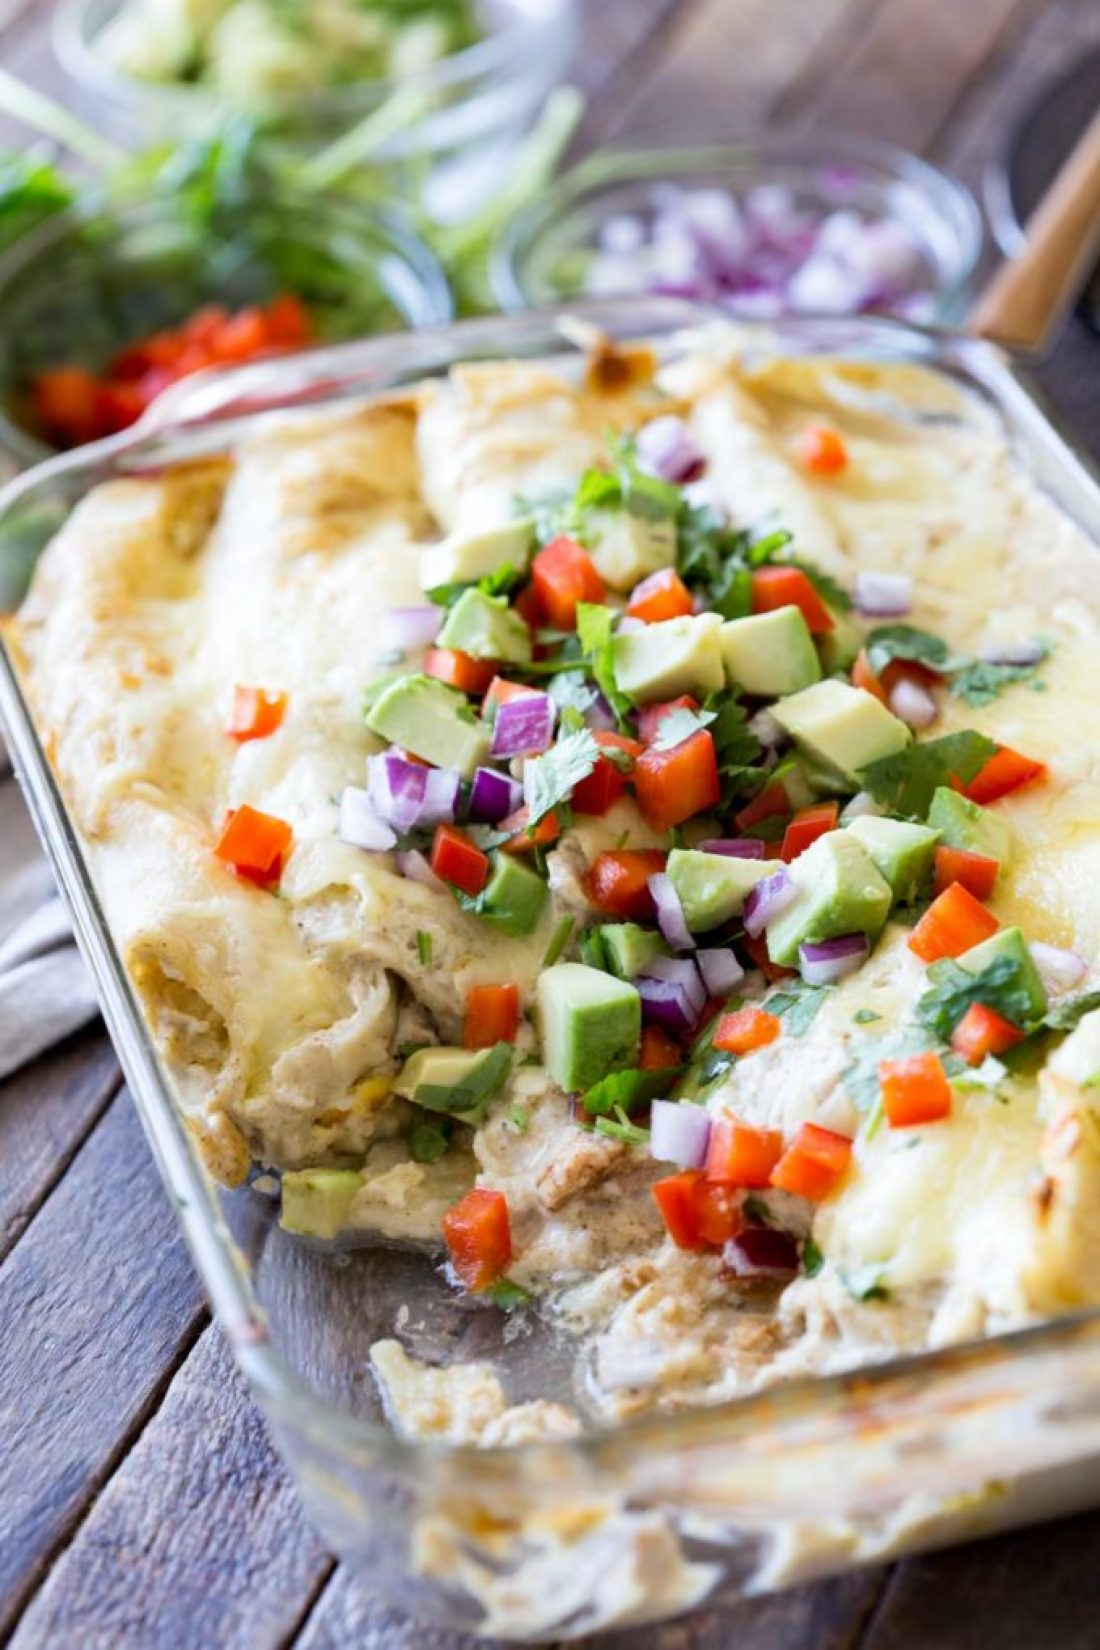 Green chili enchiladas with turkey and egg